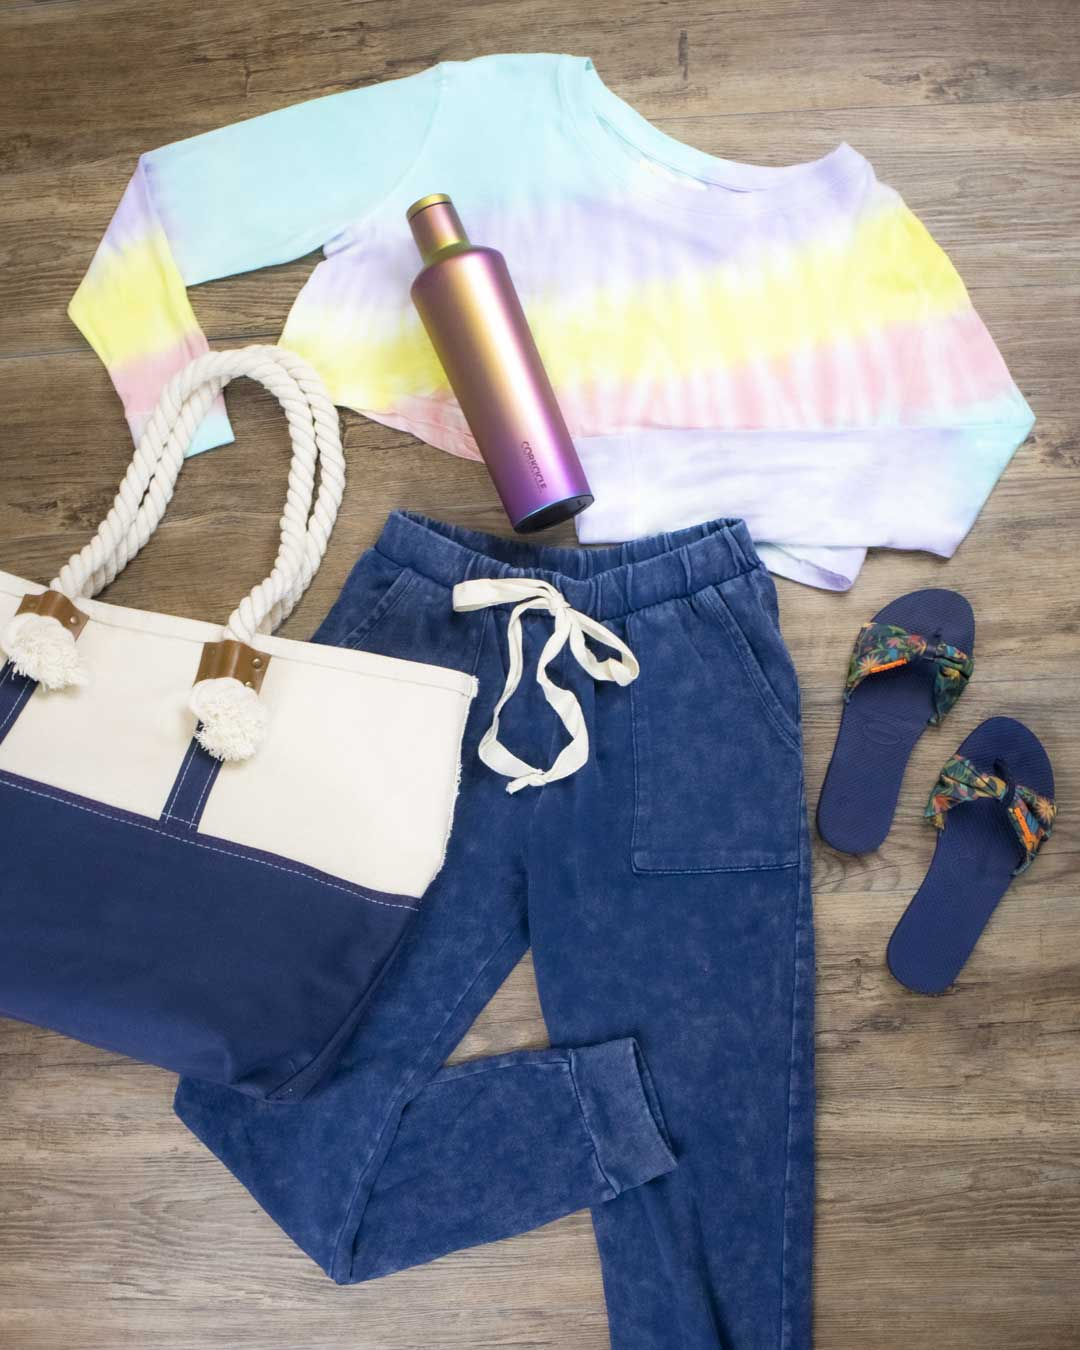 Shop the look outfit for the weekend